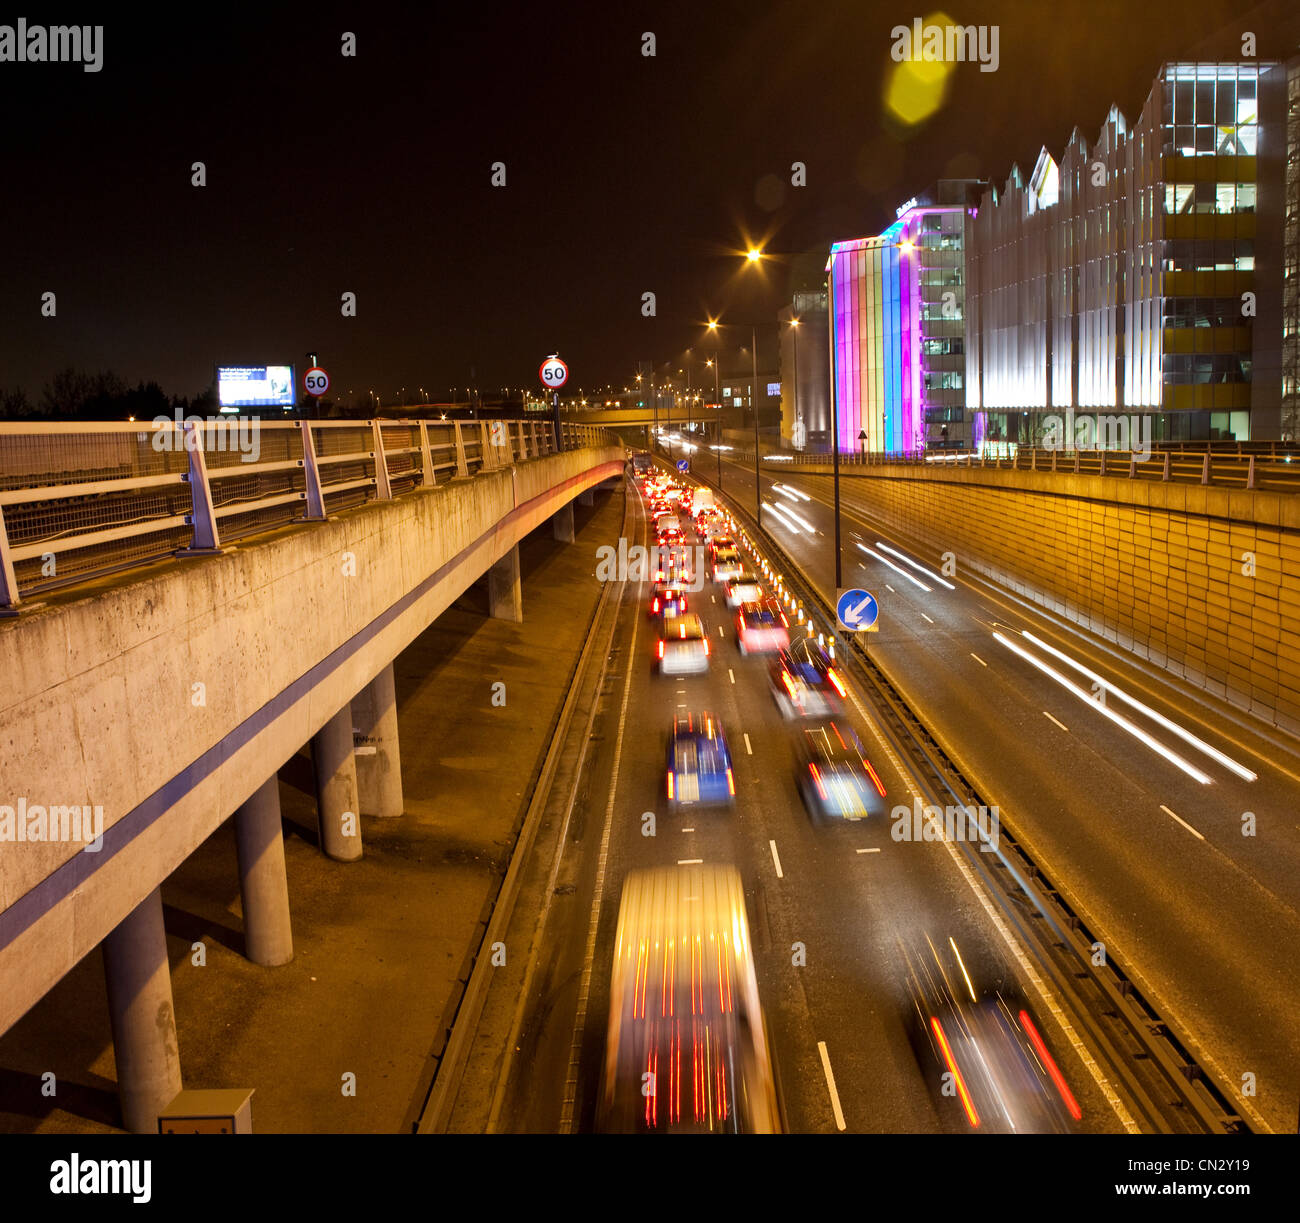 Traffic on road in urban scene at night, London, England - Stock Image